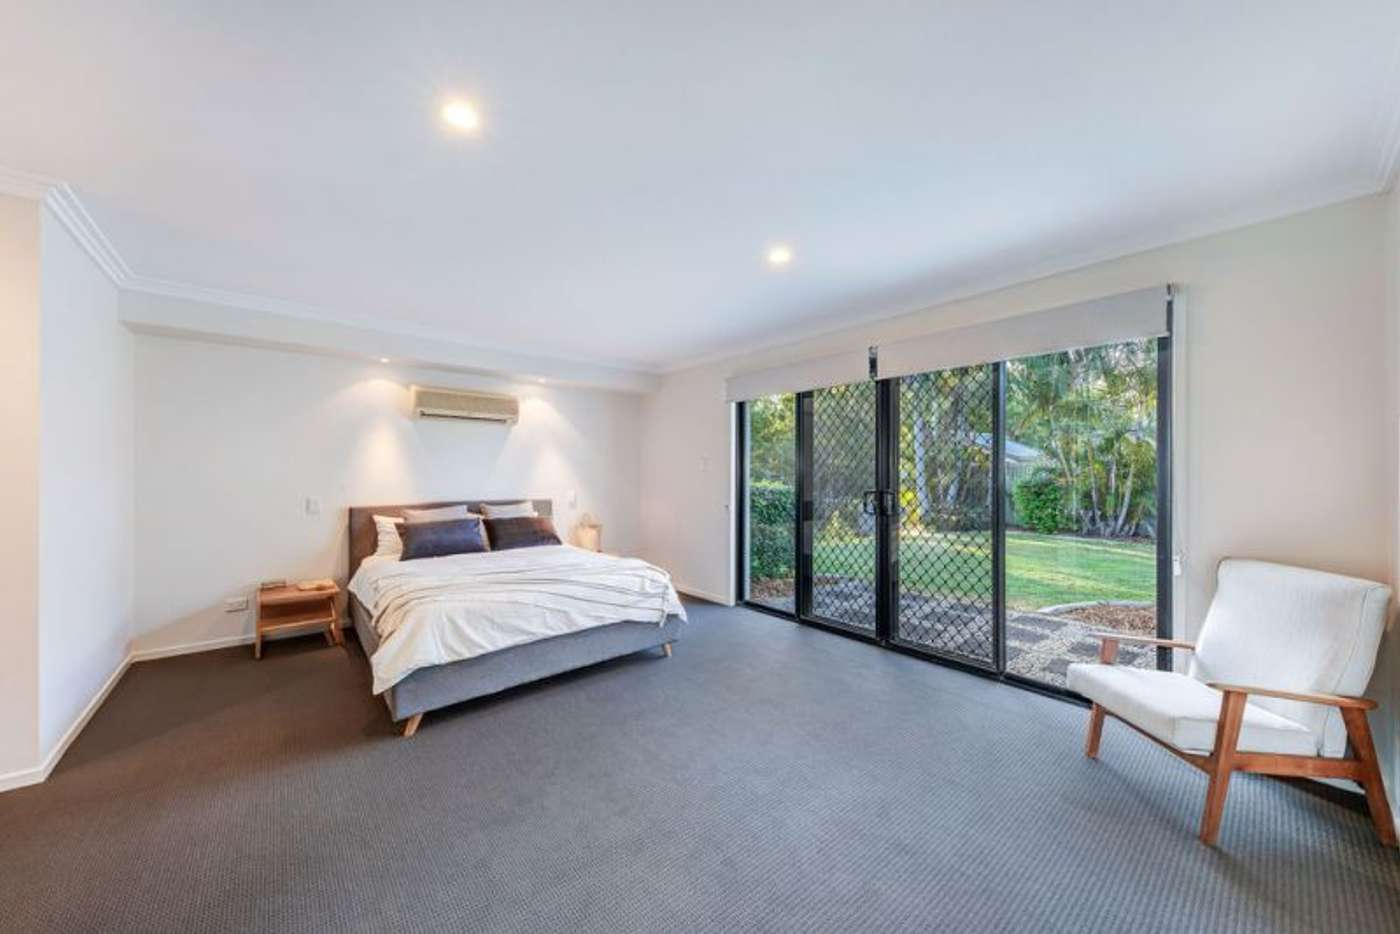 Fifth view of Homely house listing, 10 Dornoch Way, Peregian Springs QLD 4573